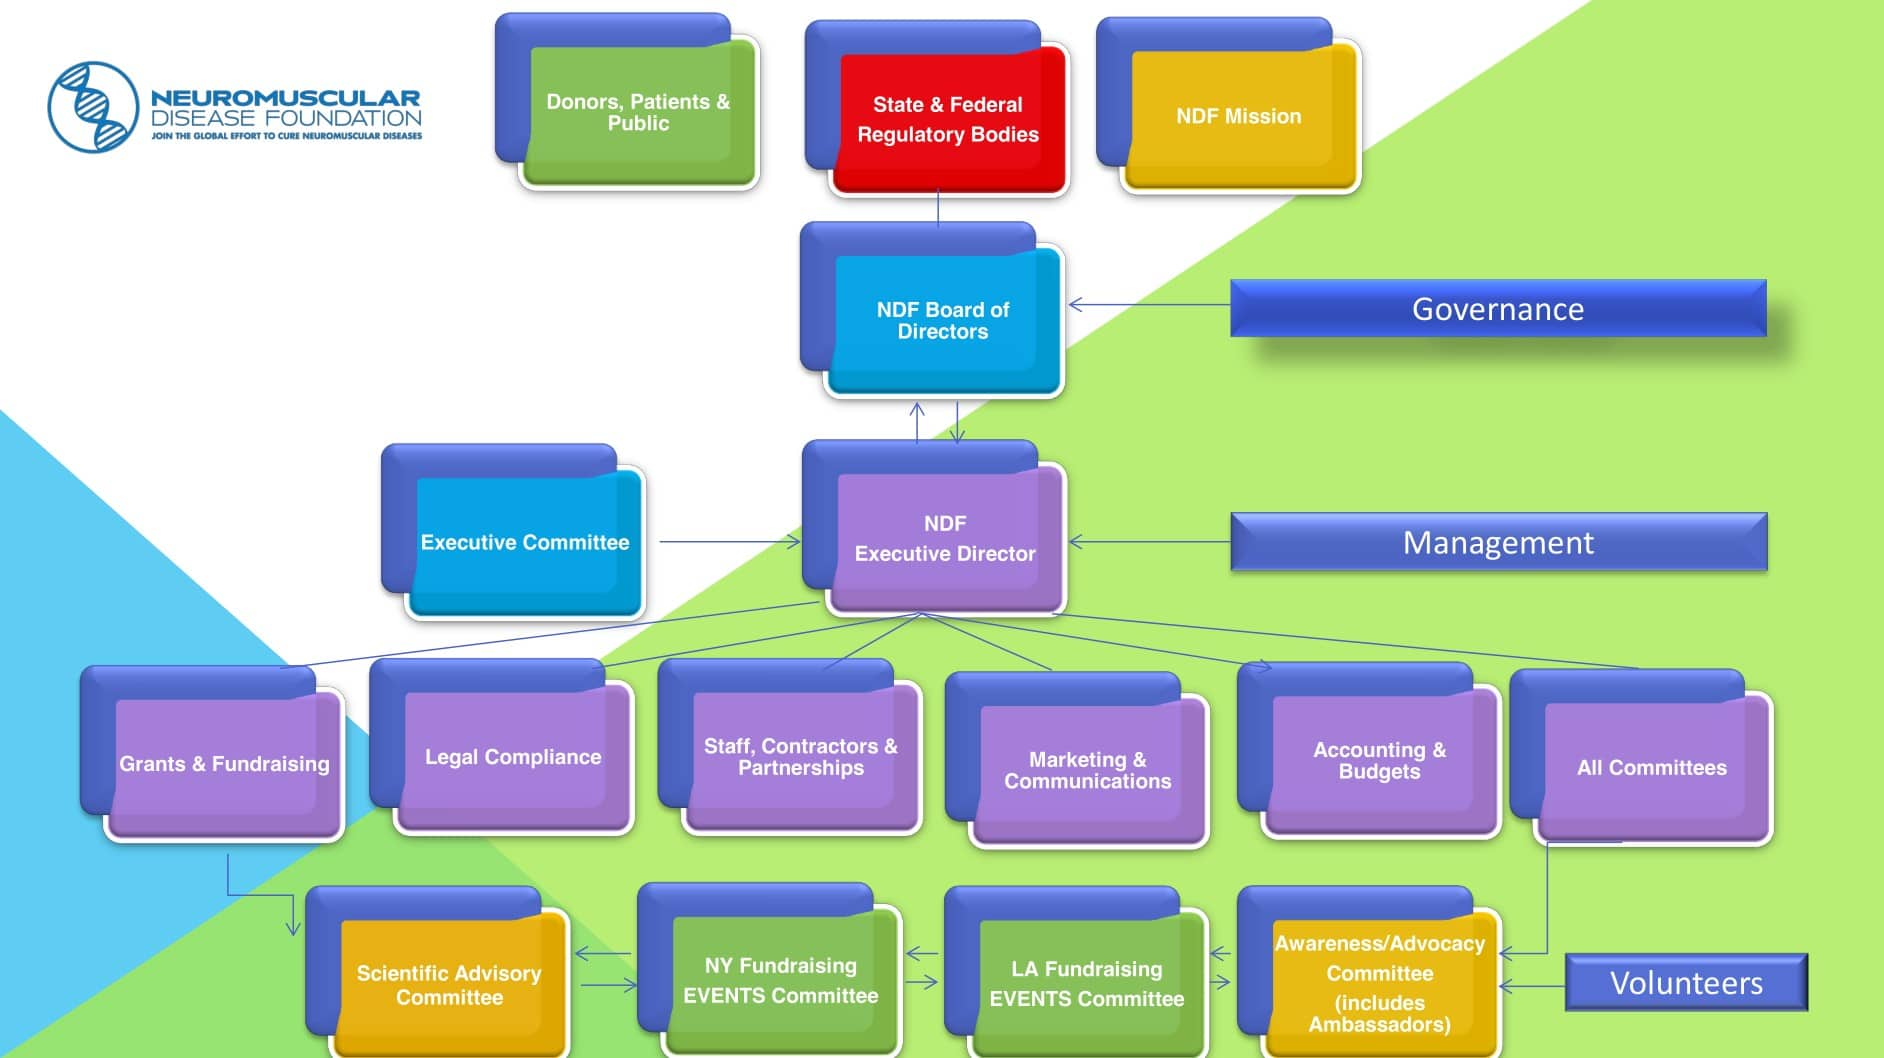 Chart explaining the organizational structure of NDF